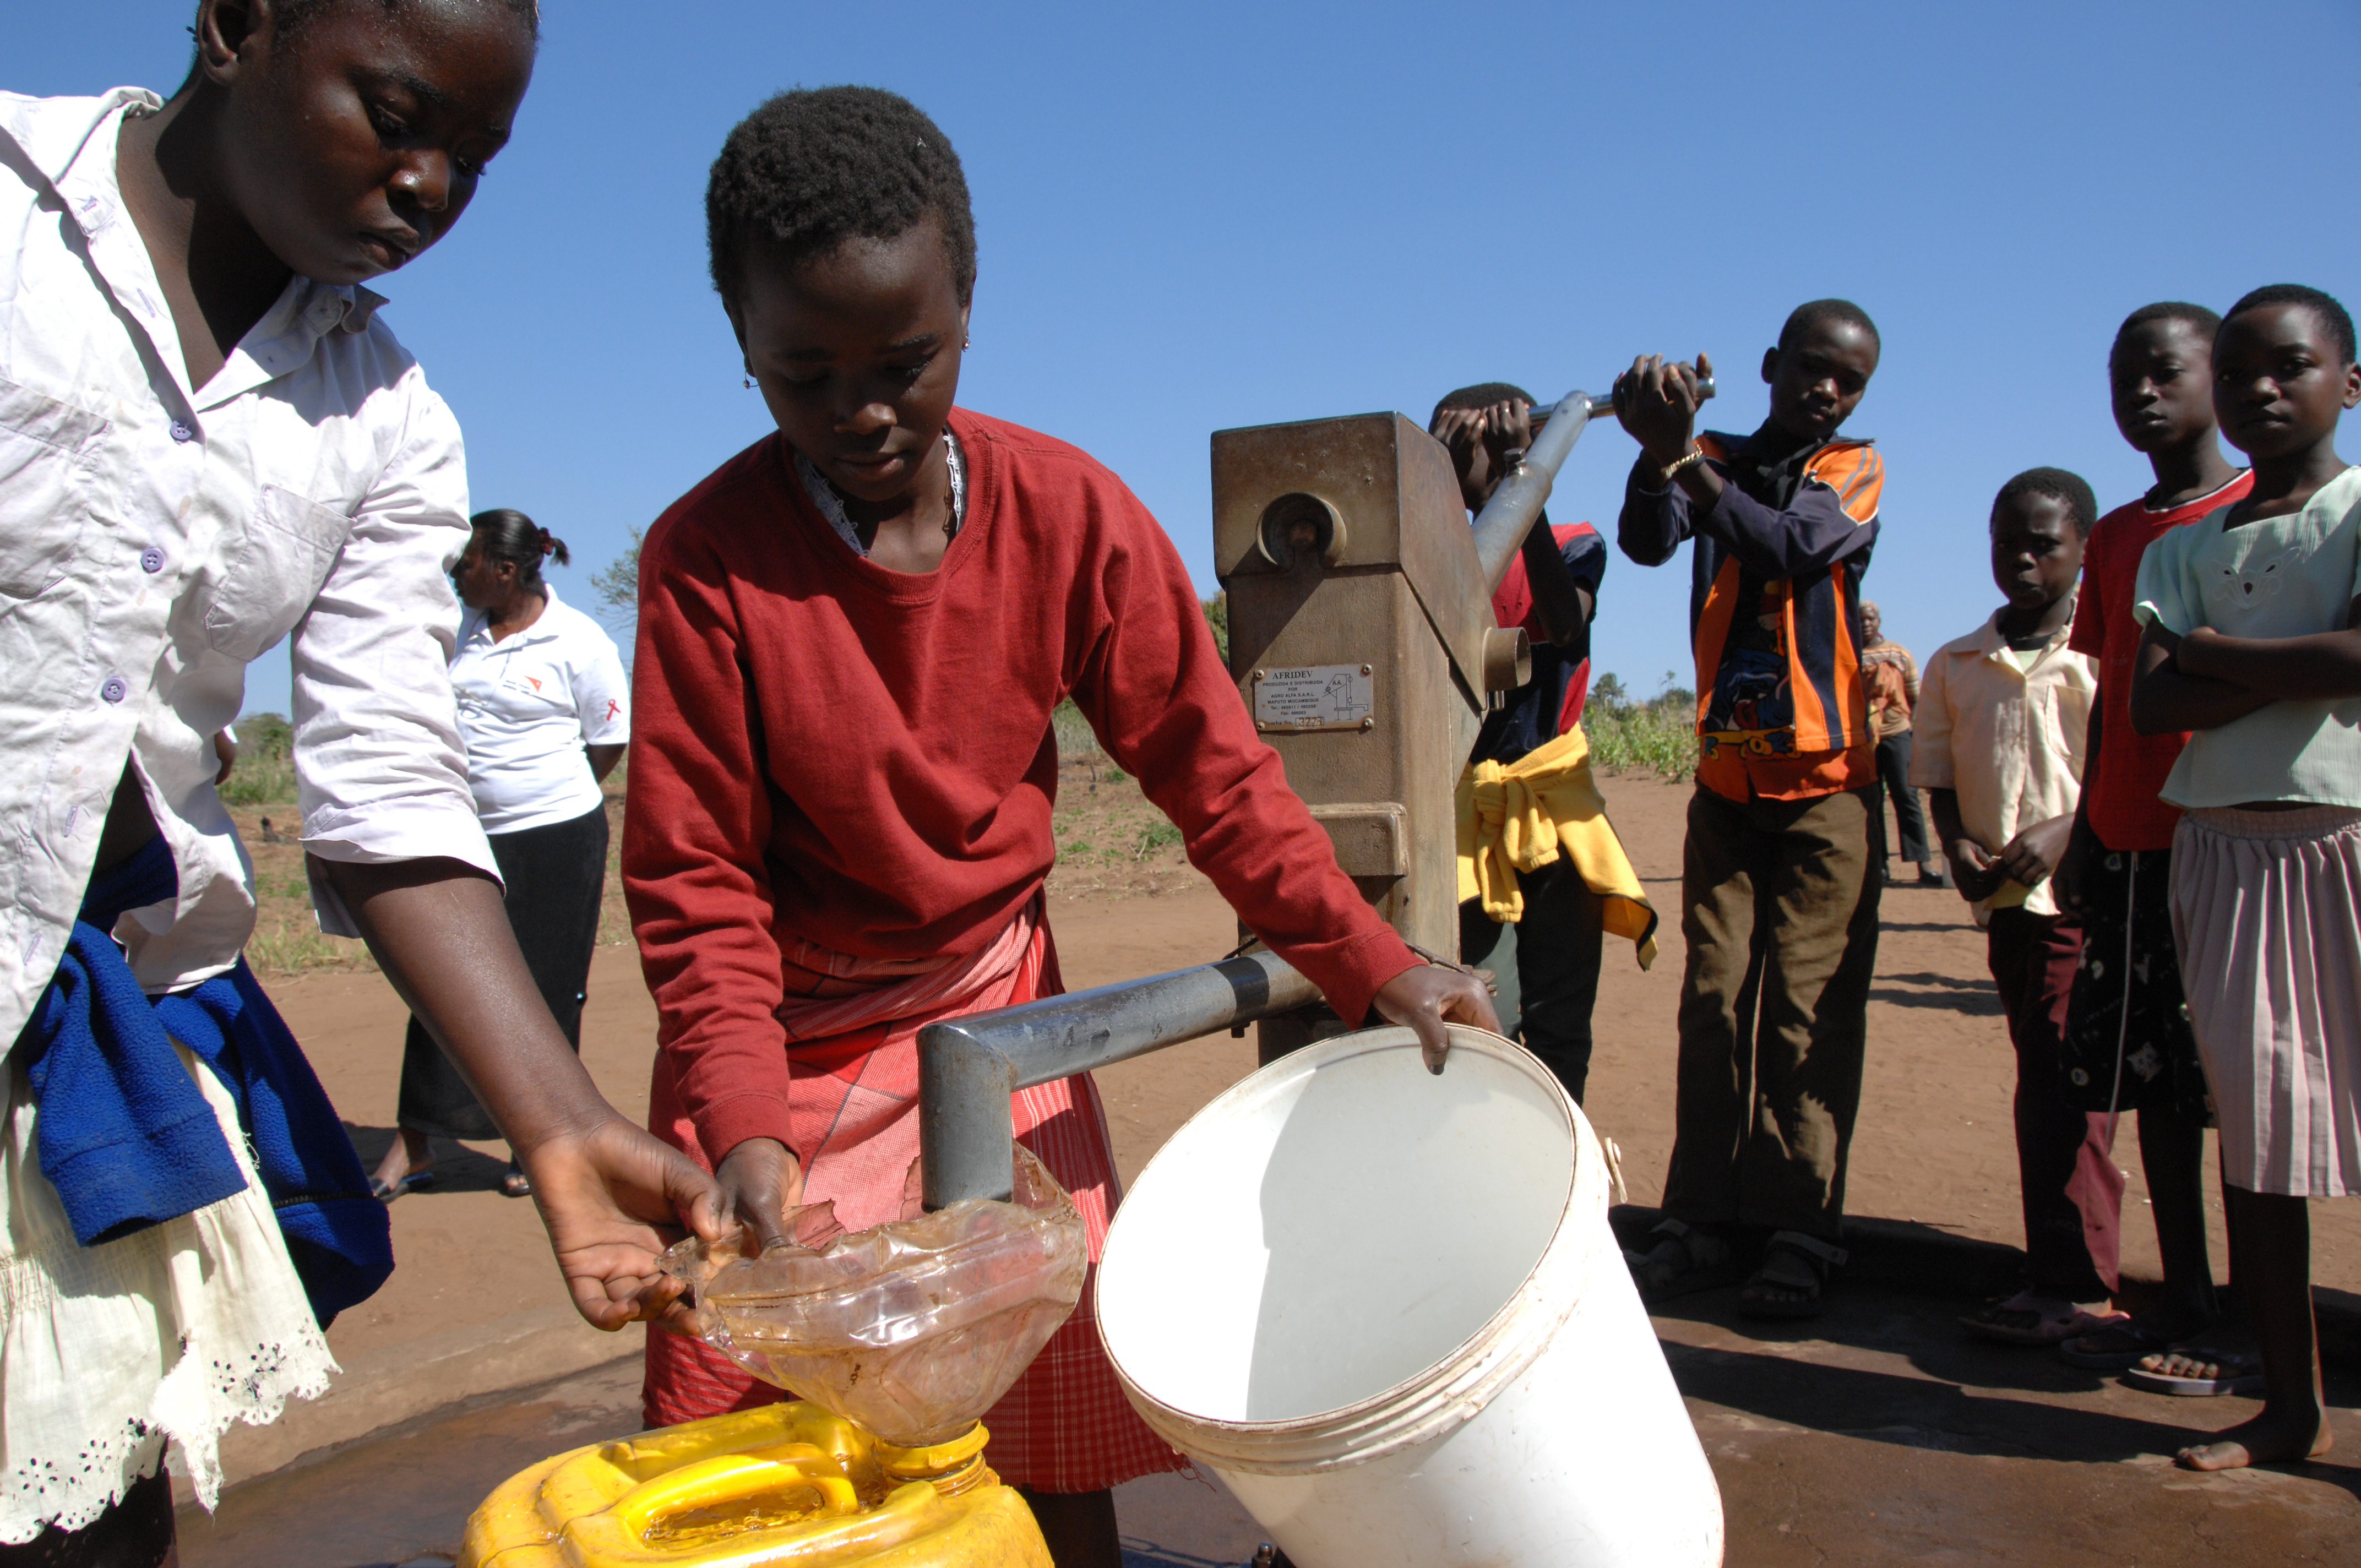 Children collect water from a pump installed at their school, as part of the child-friendly schools initiative in Mozambique. Photo ©UNICEF/NYHQ2007-2514/Thierry Delvigne-Jean